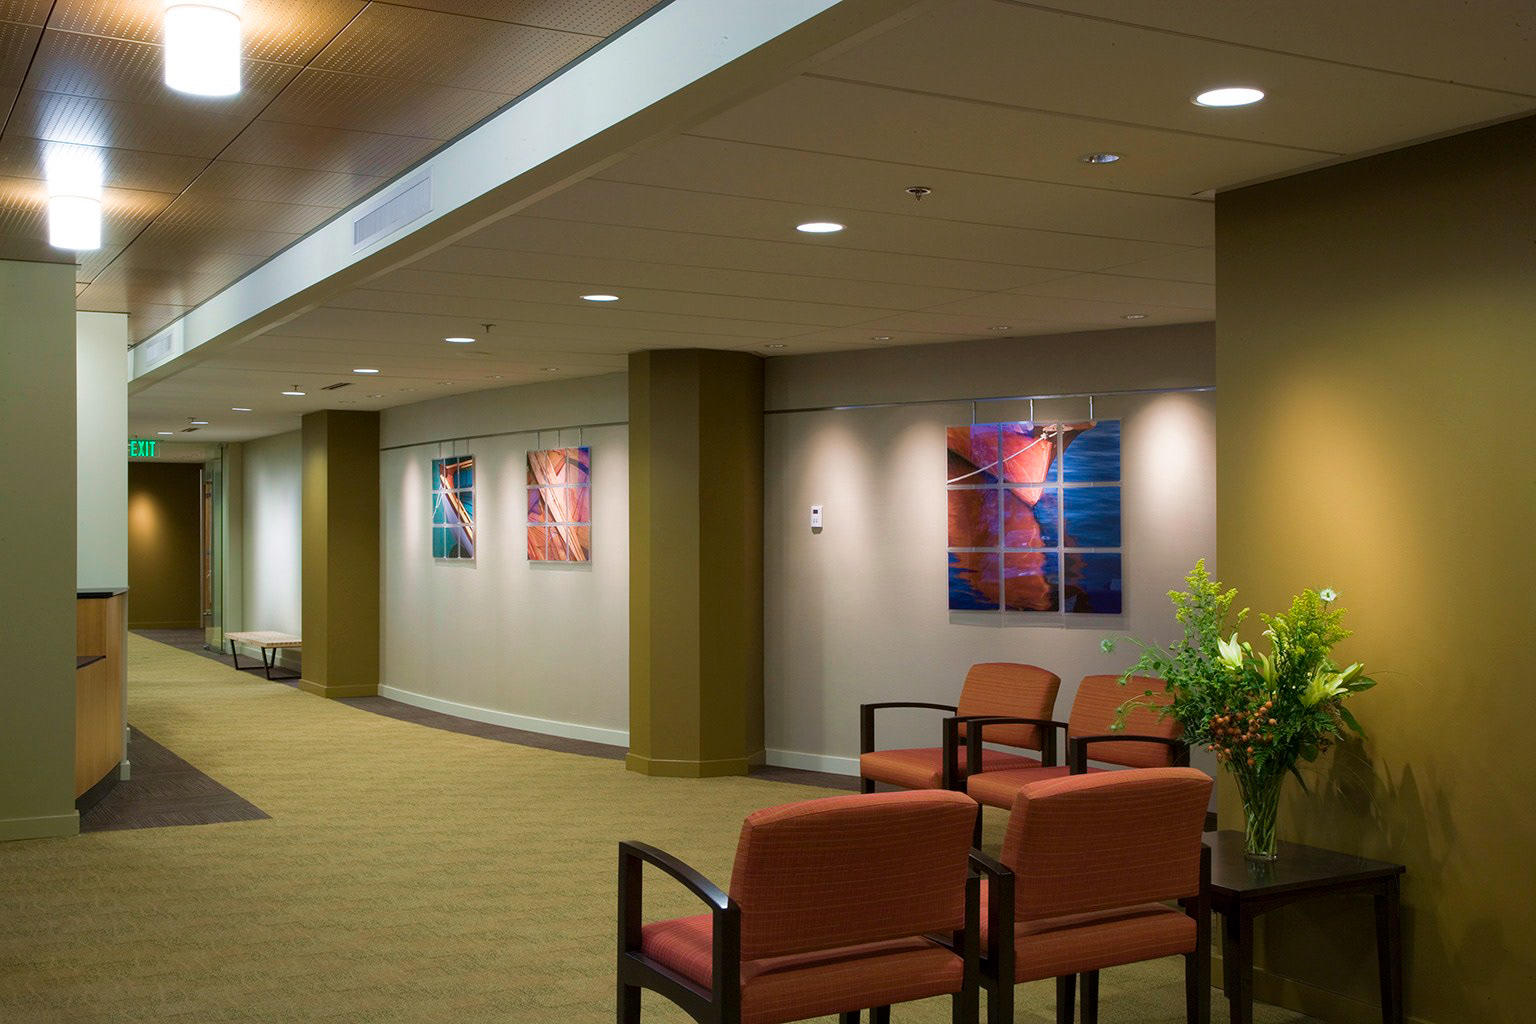 Katie hastings design llc the polyclinic family practice and dermatology for Dermatology clinic interior design